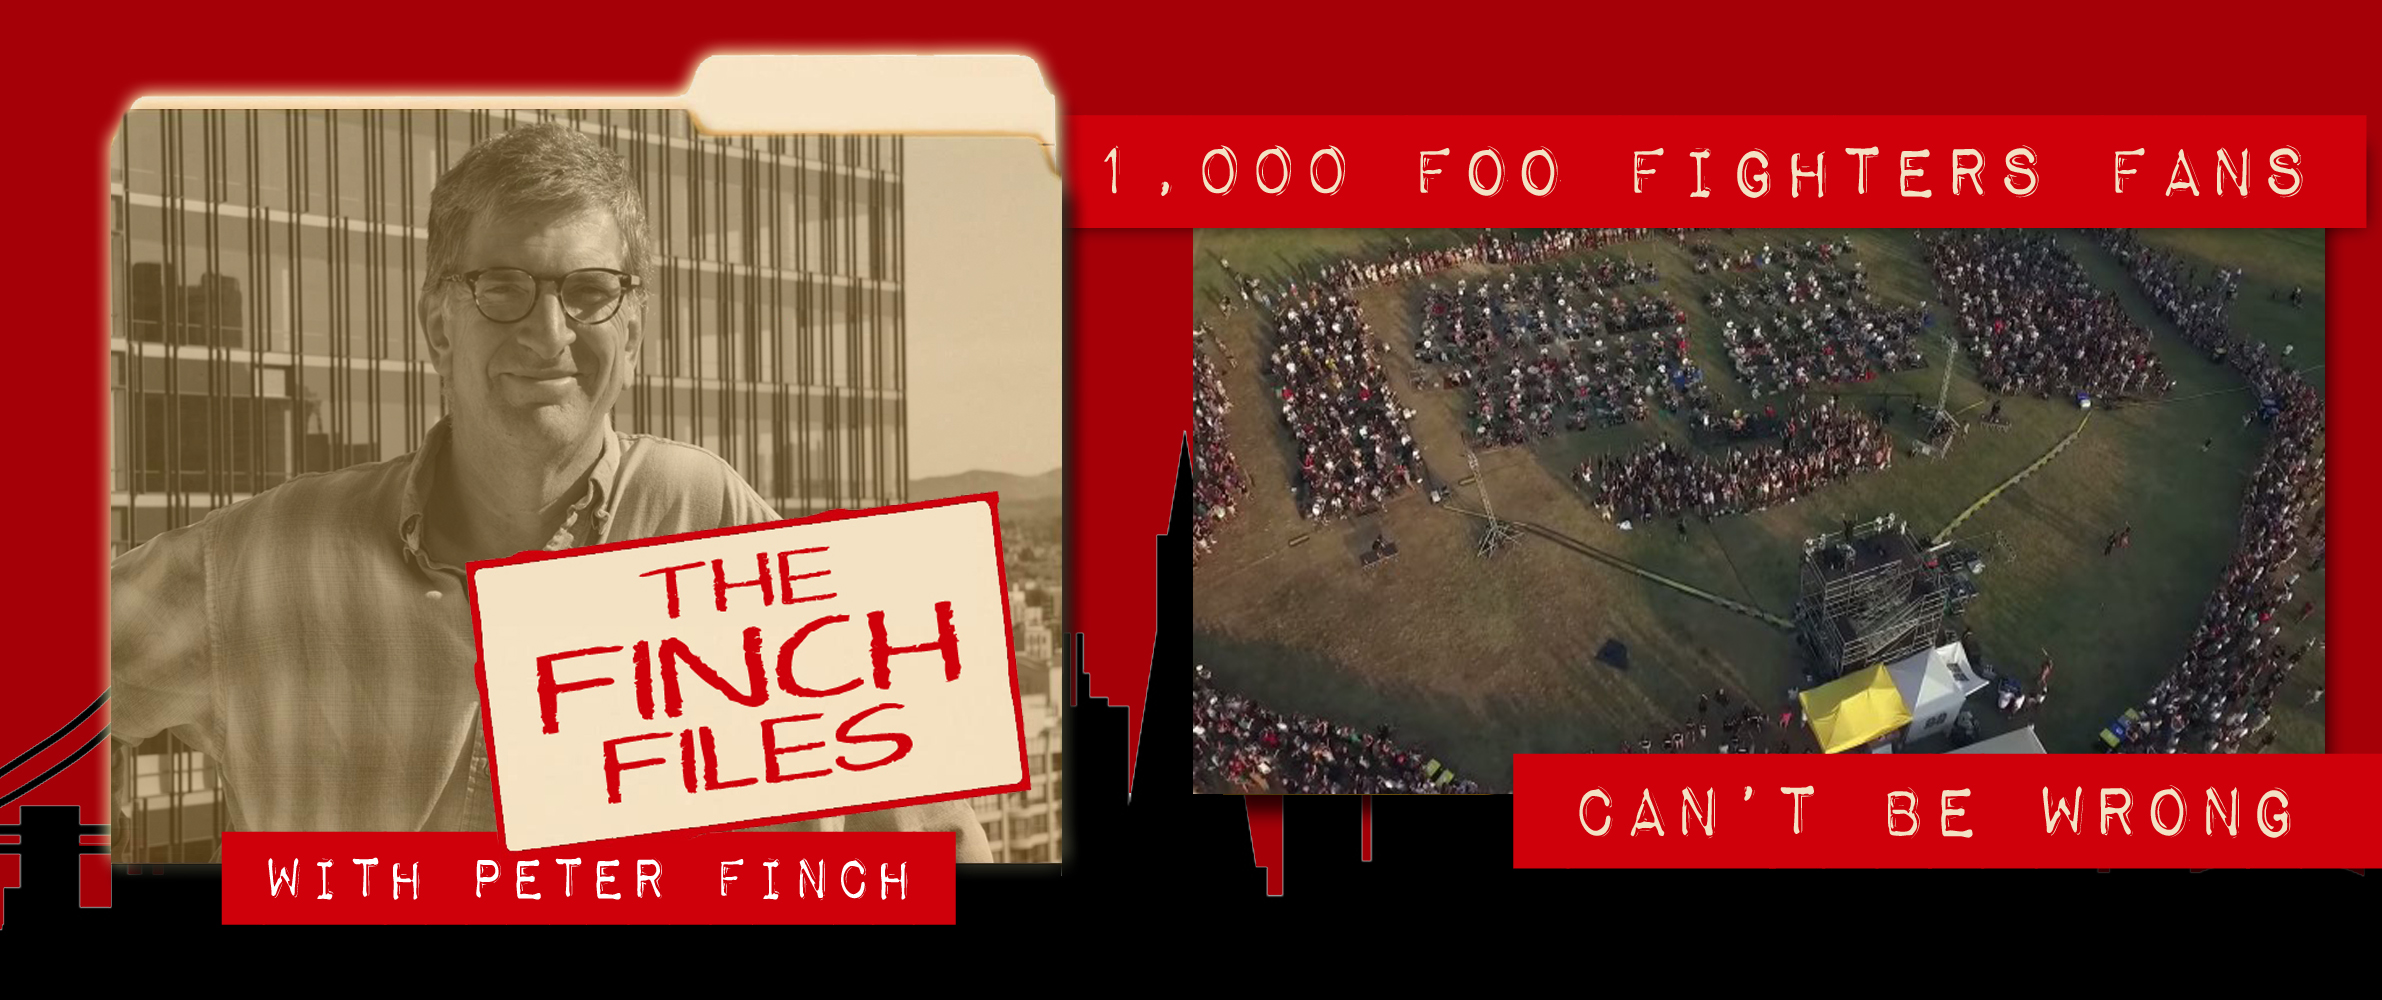 The Finch Files: 1,000 Italian Foo Fighters Fans Can't Be Wrong